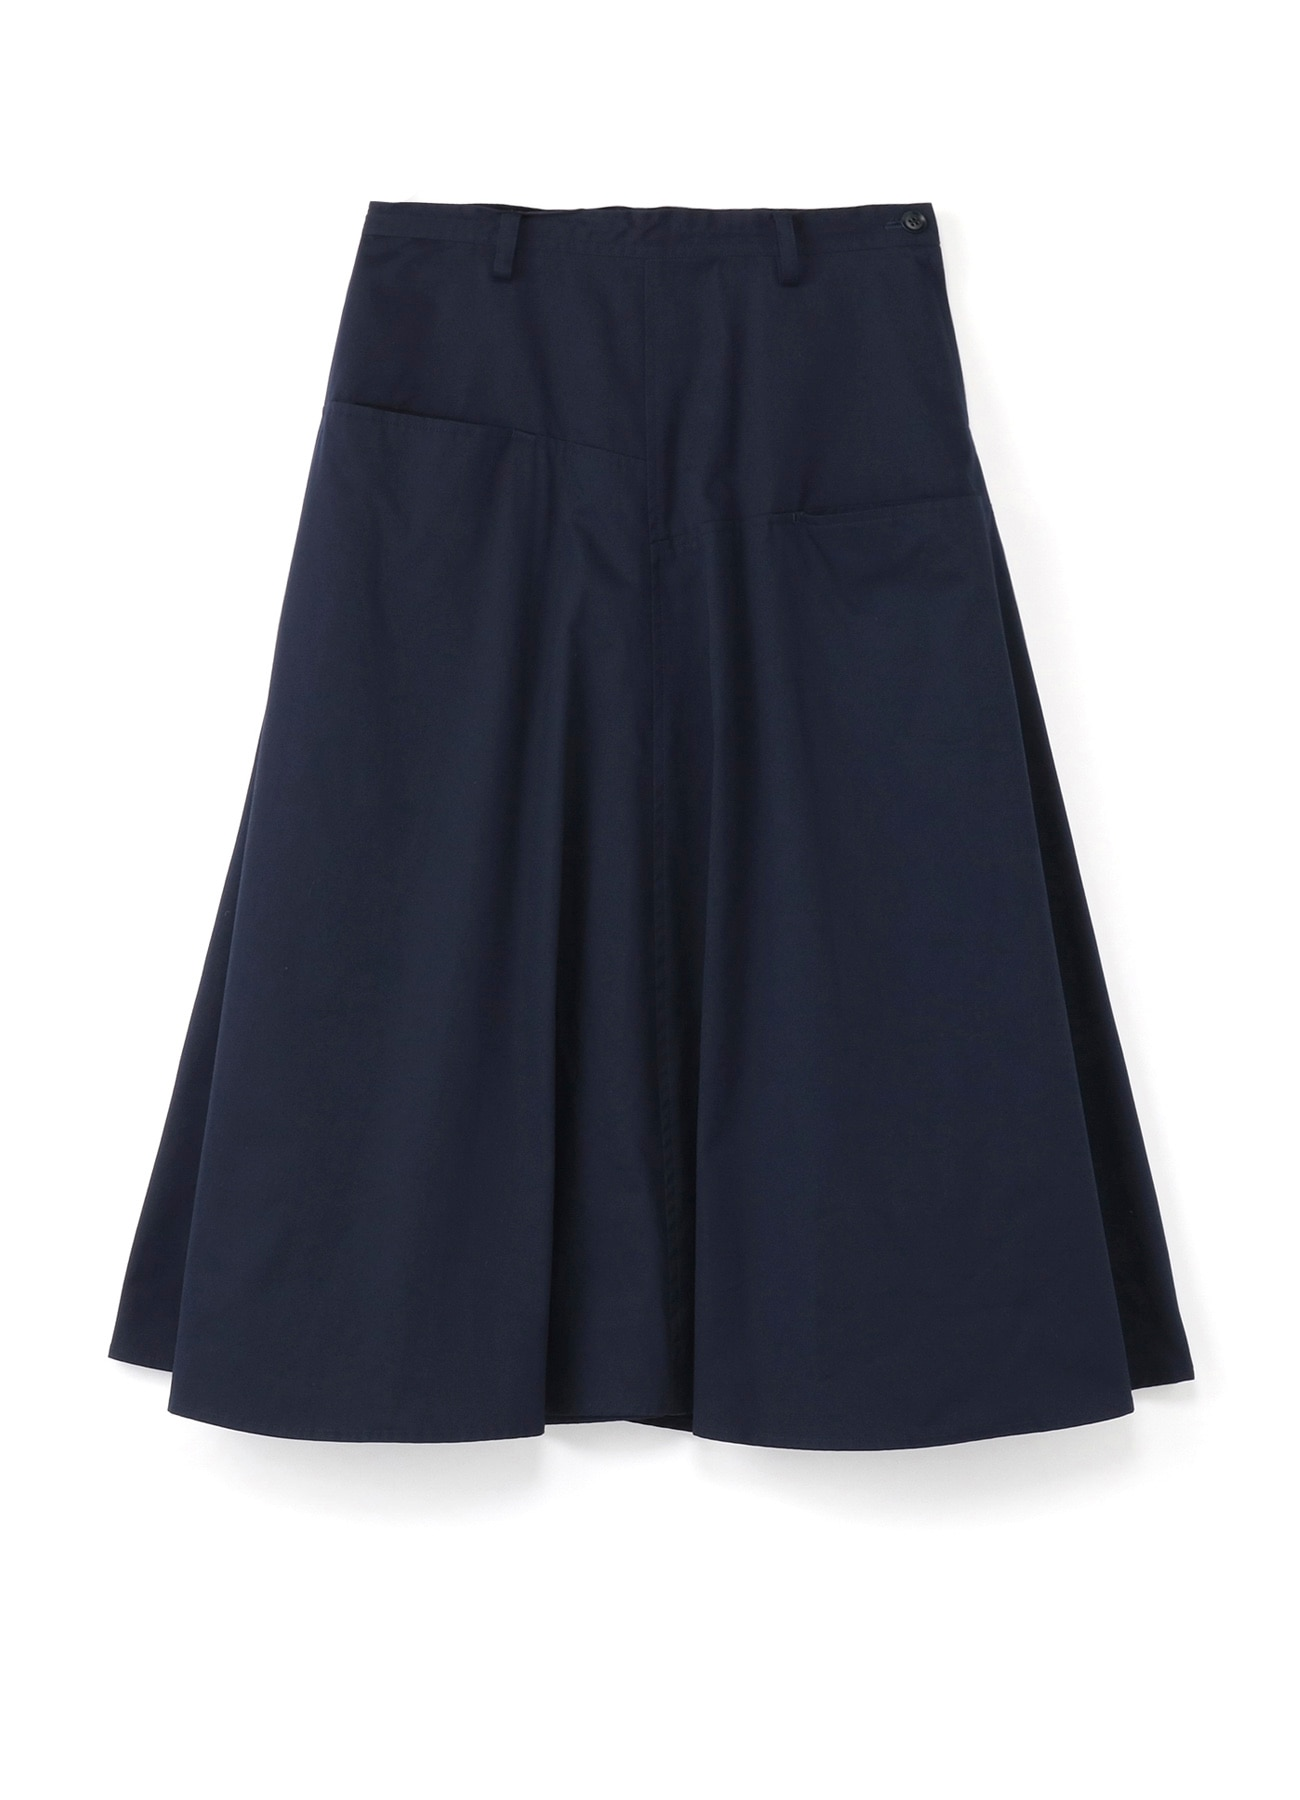 Alteration Pocket Skirt